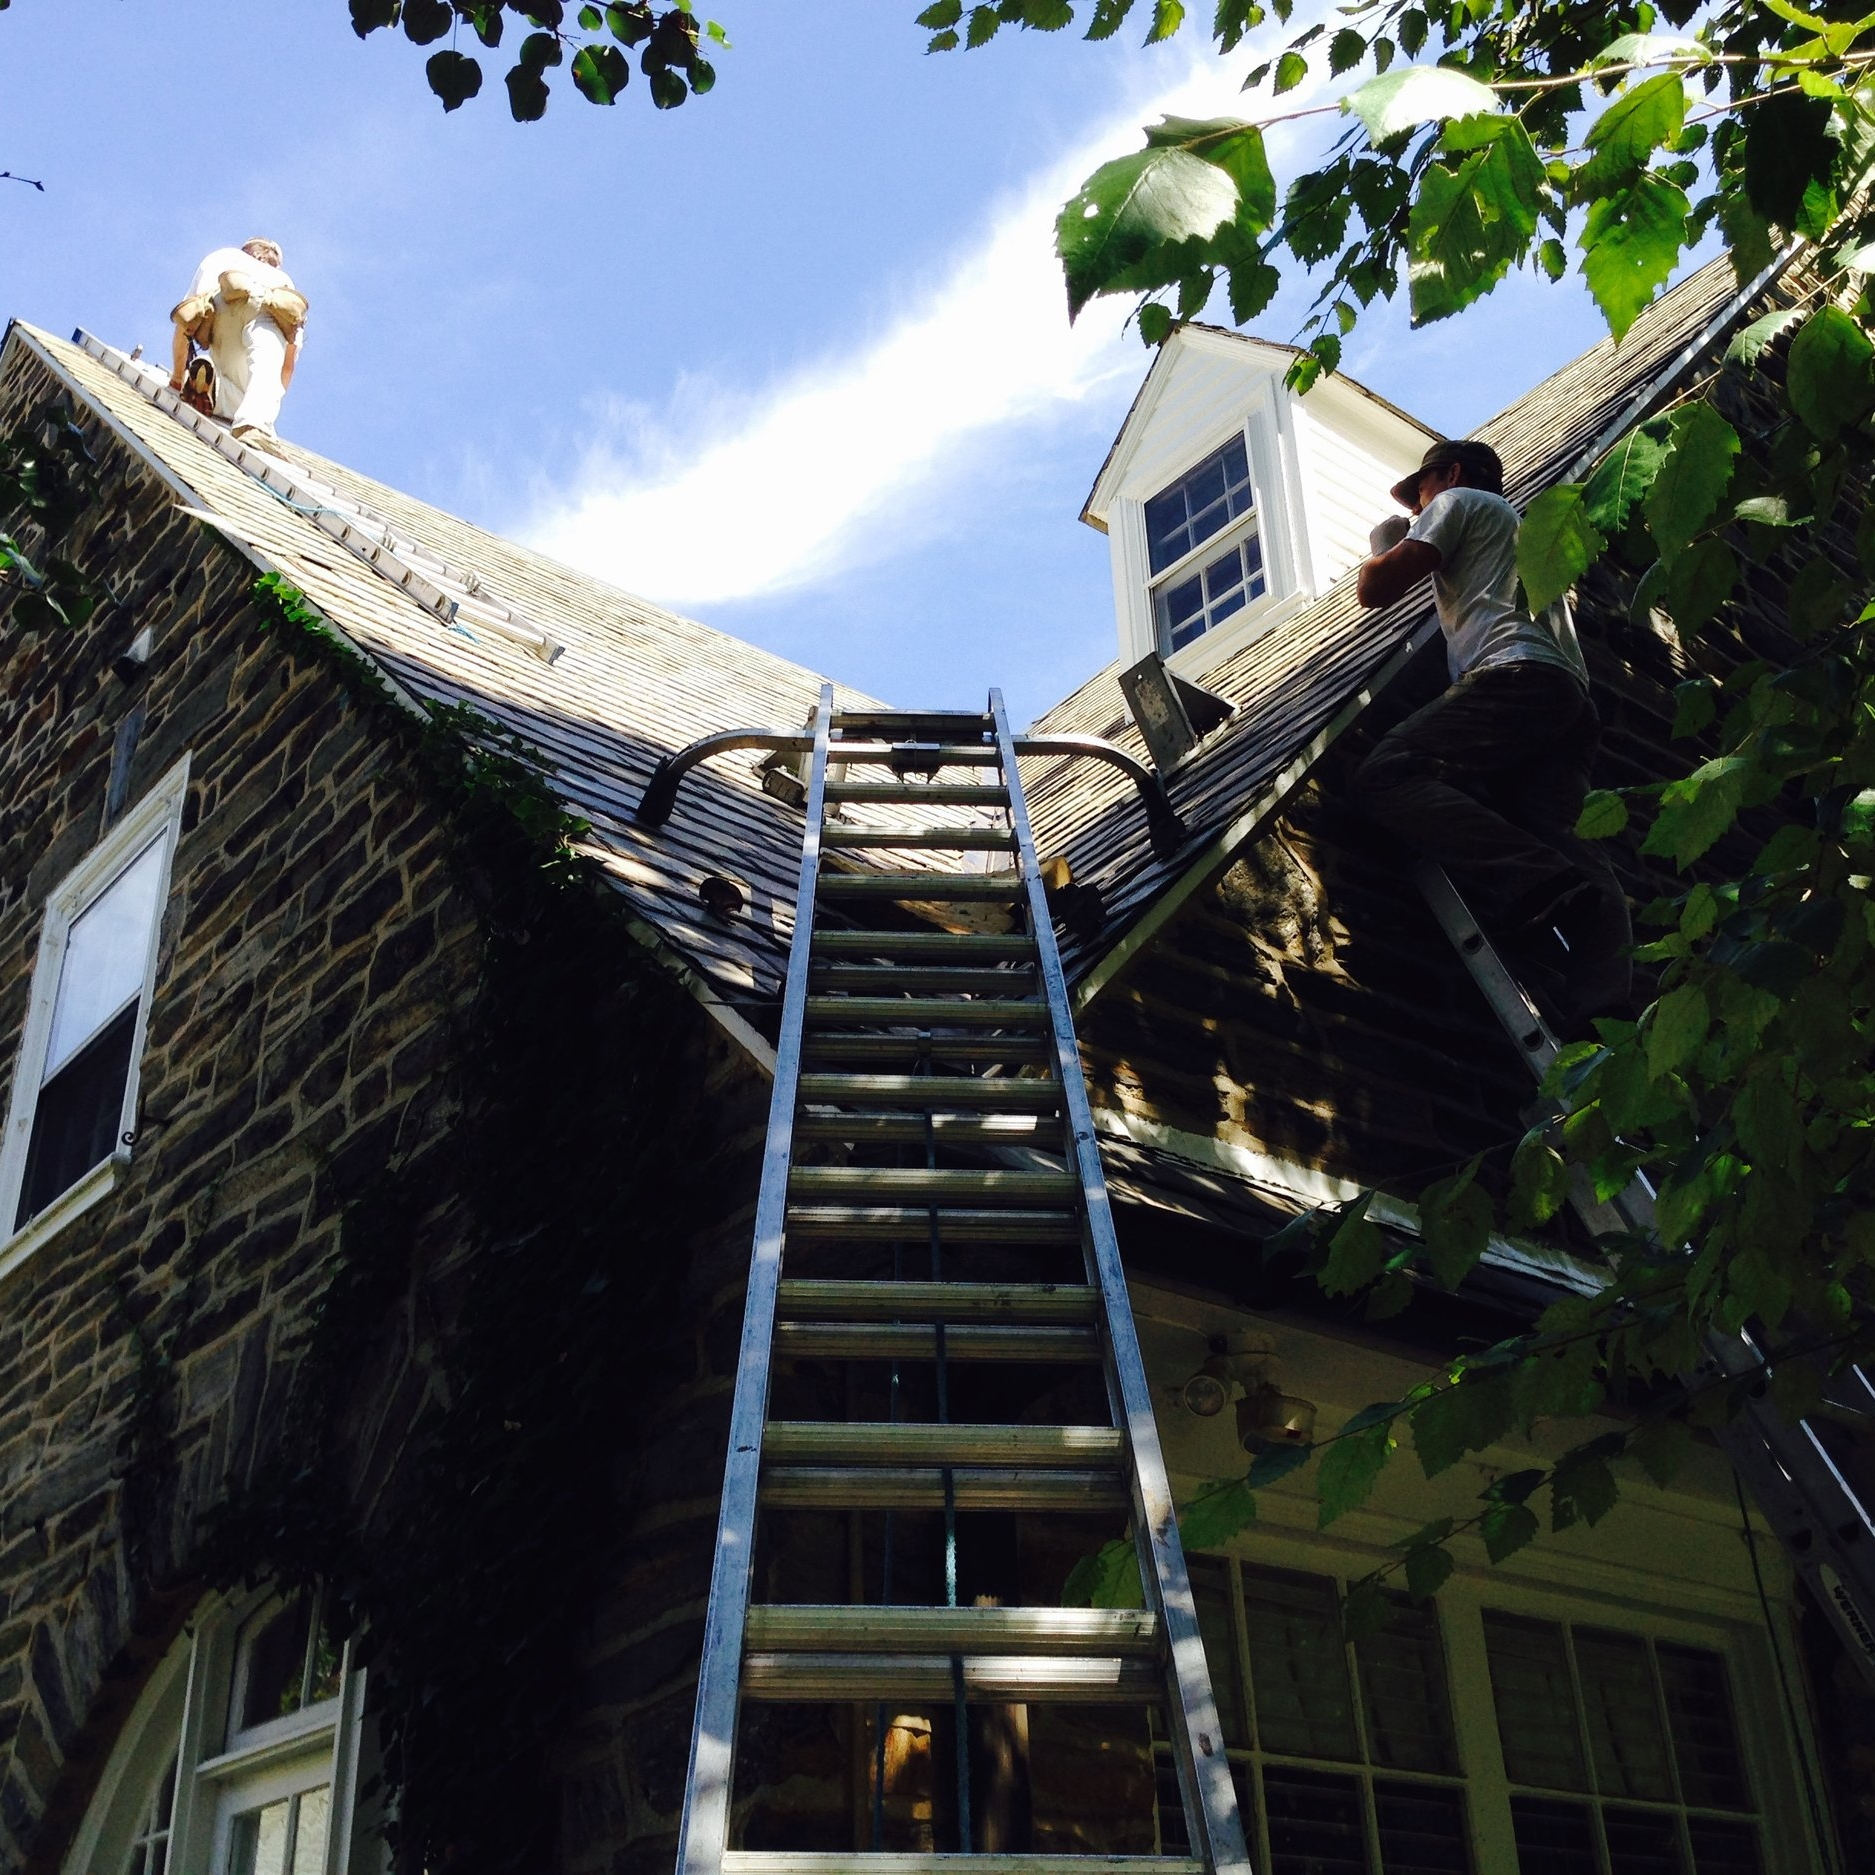 This is our typical view of a steep roof. Pro-tip: if someone accesses your roof or gutters without a ladder guard, then throw that person off your property. Too many unqualified roofers or landscapers crush gutters or crack slate with unprotected ladders. You might think you are saving money, but the subsequent leaks are far more expensive to repair.